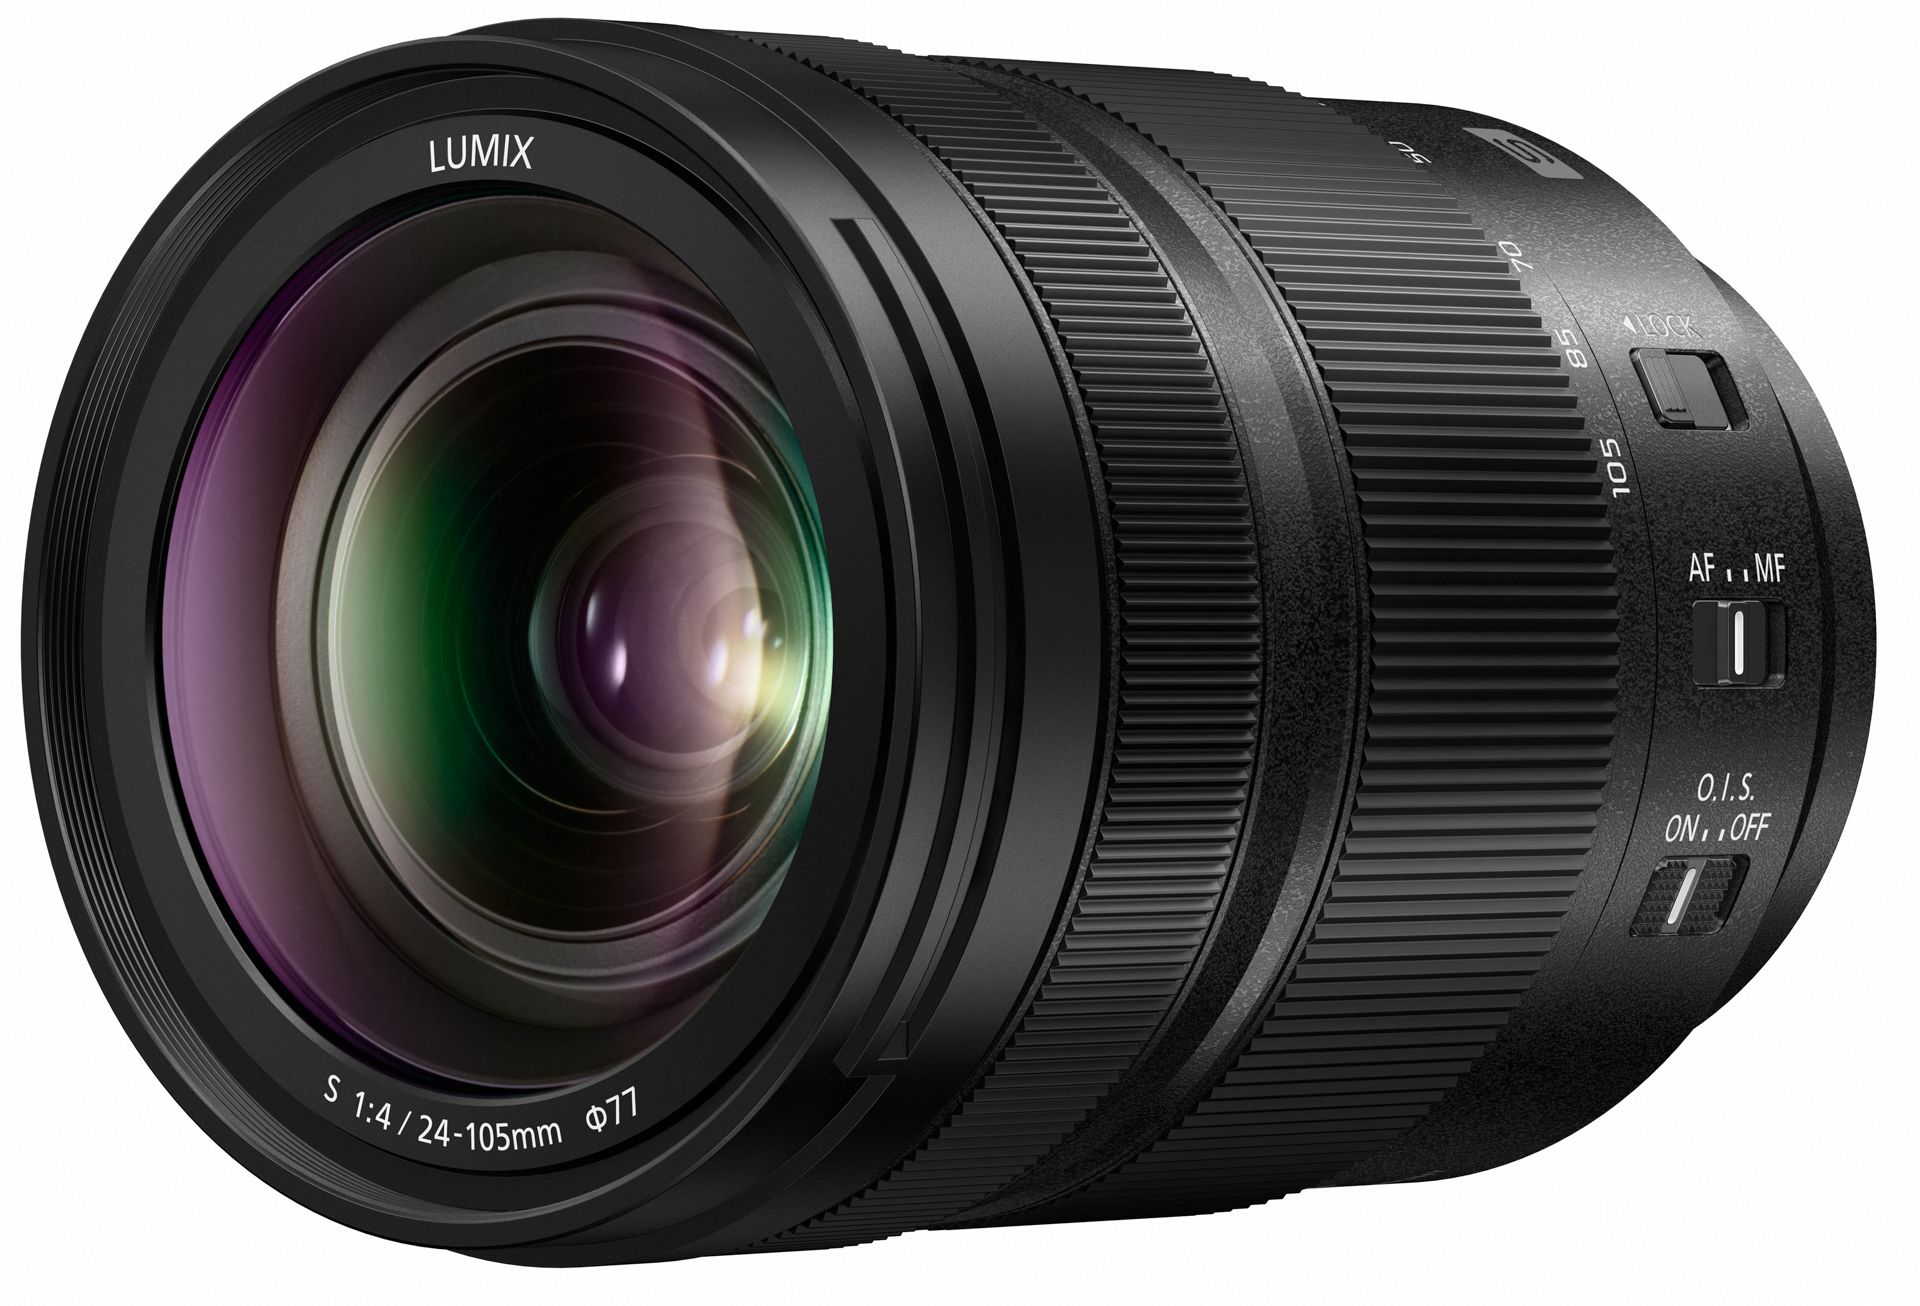 Panasonic confirms Sseries lens triplet for Lumix S1R and